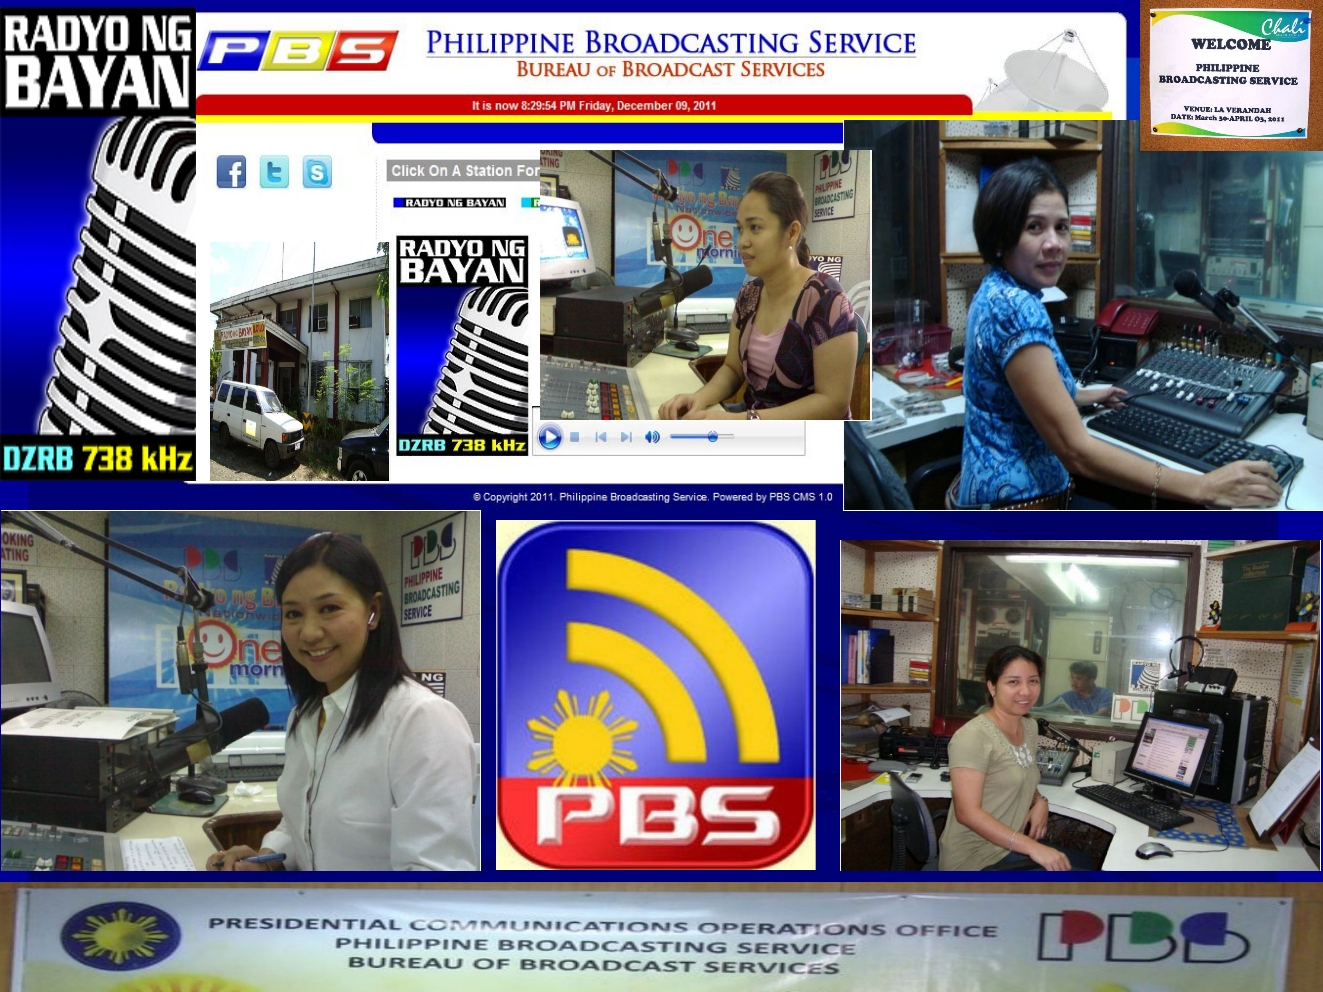 fm sations in the philippines 963 easy rock is a music fm radio station owned by acws - united broadcasting network, inc in the philippines the station's studio is located at fems to.